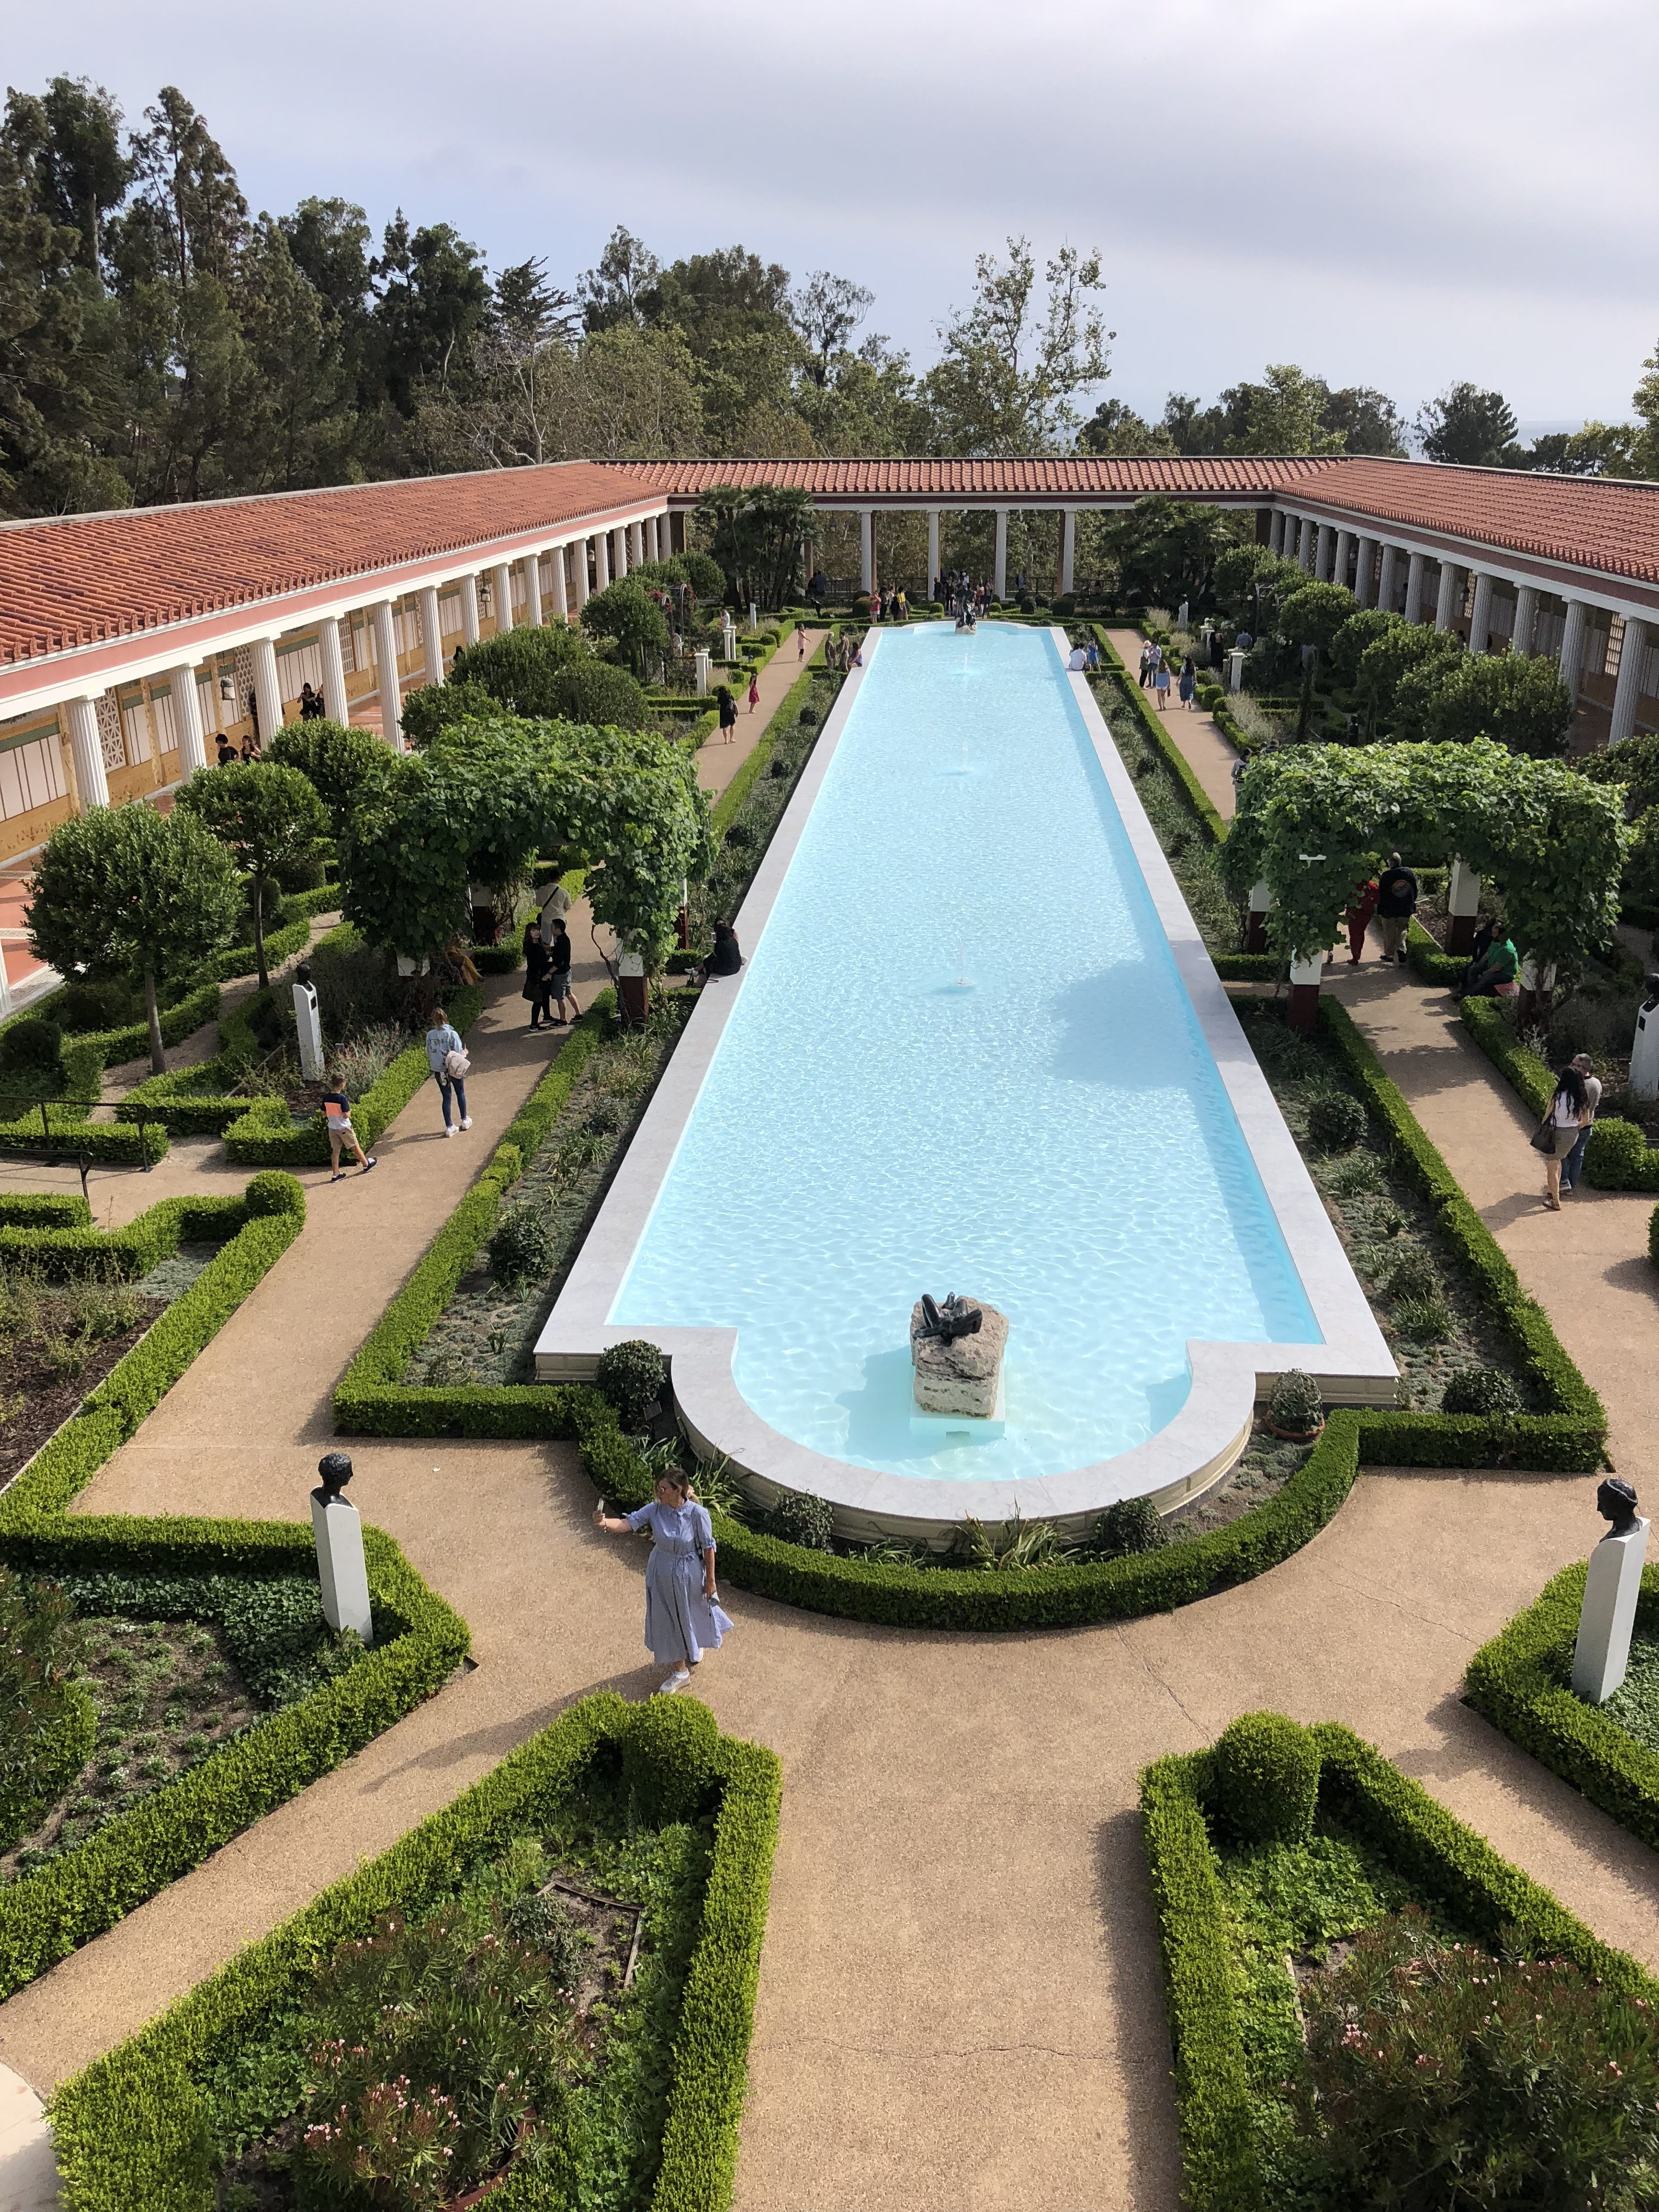 Staycation Post 002: The Getty Villa